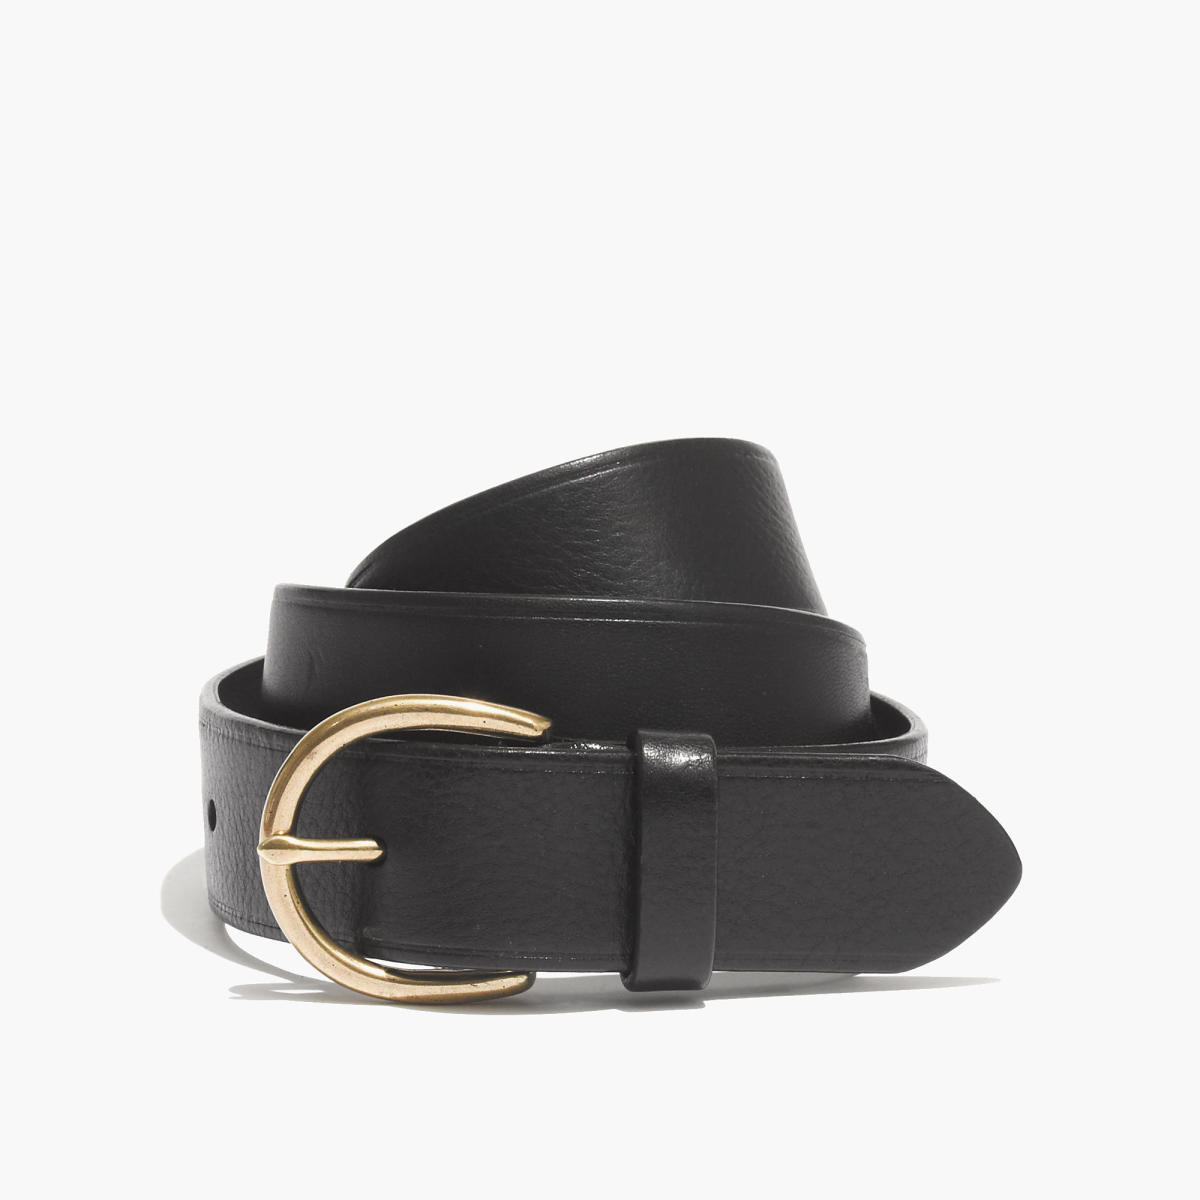 Madewell medium perfect leather belt, $45, available at Madewell